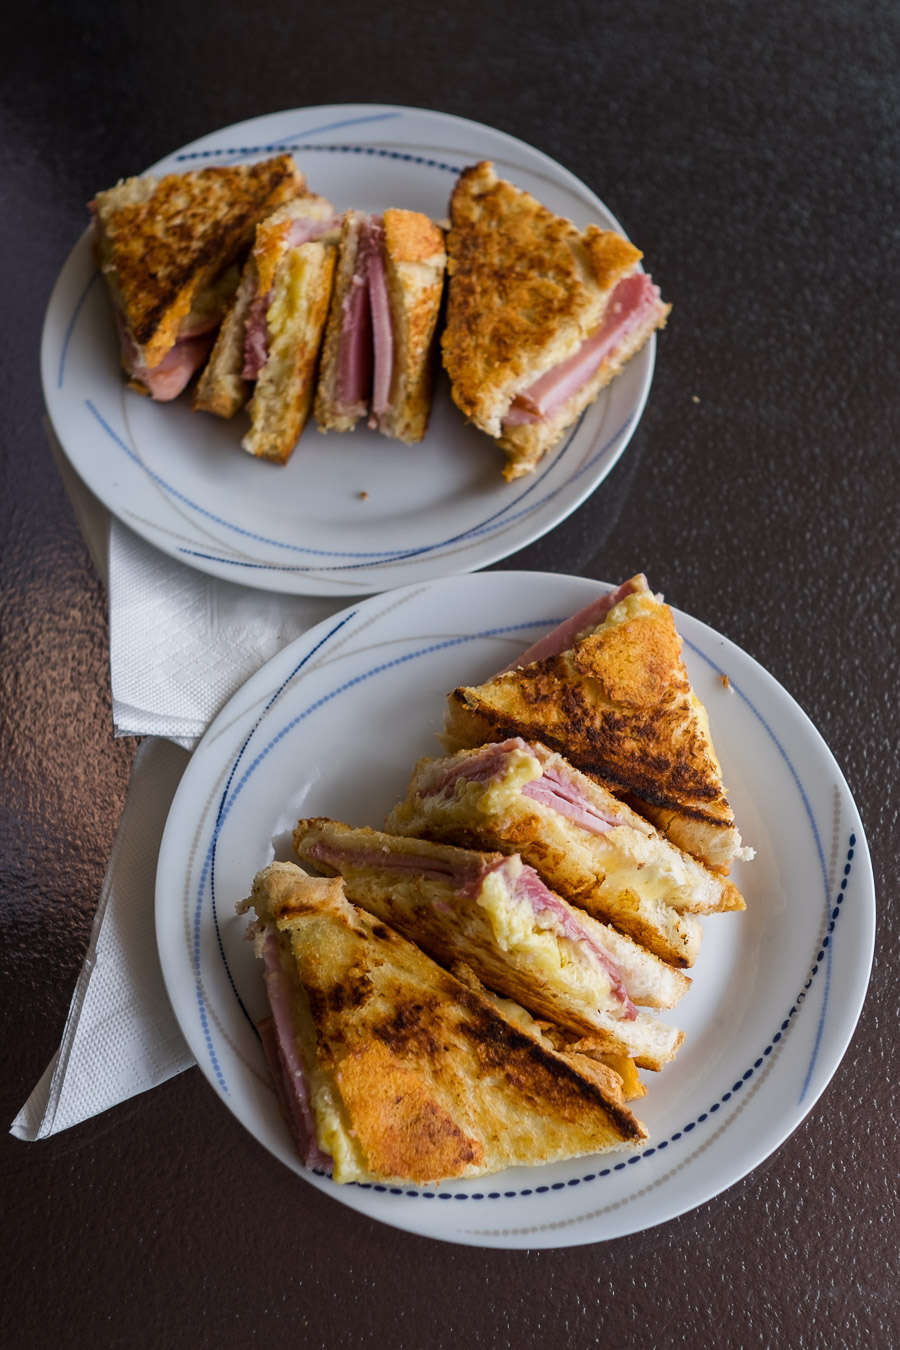 Ham, cheese and mustard toasted sandwiches